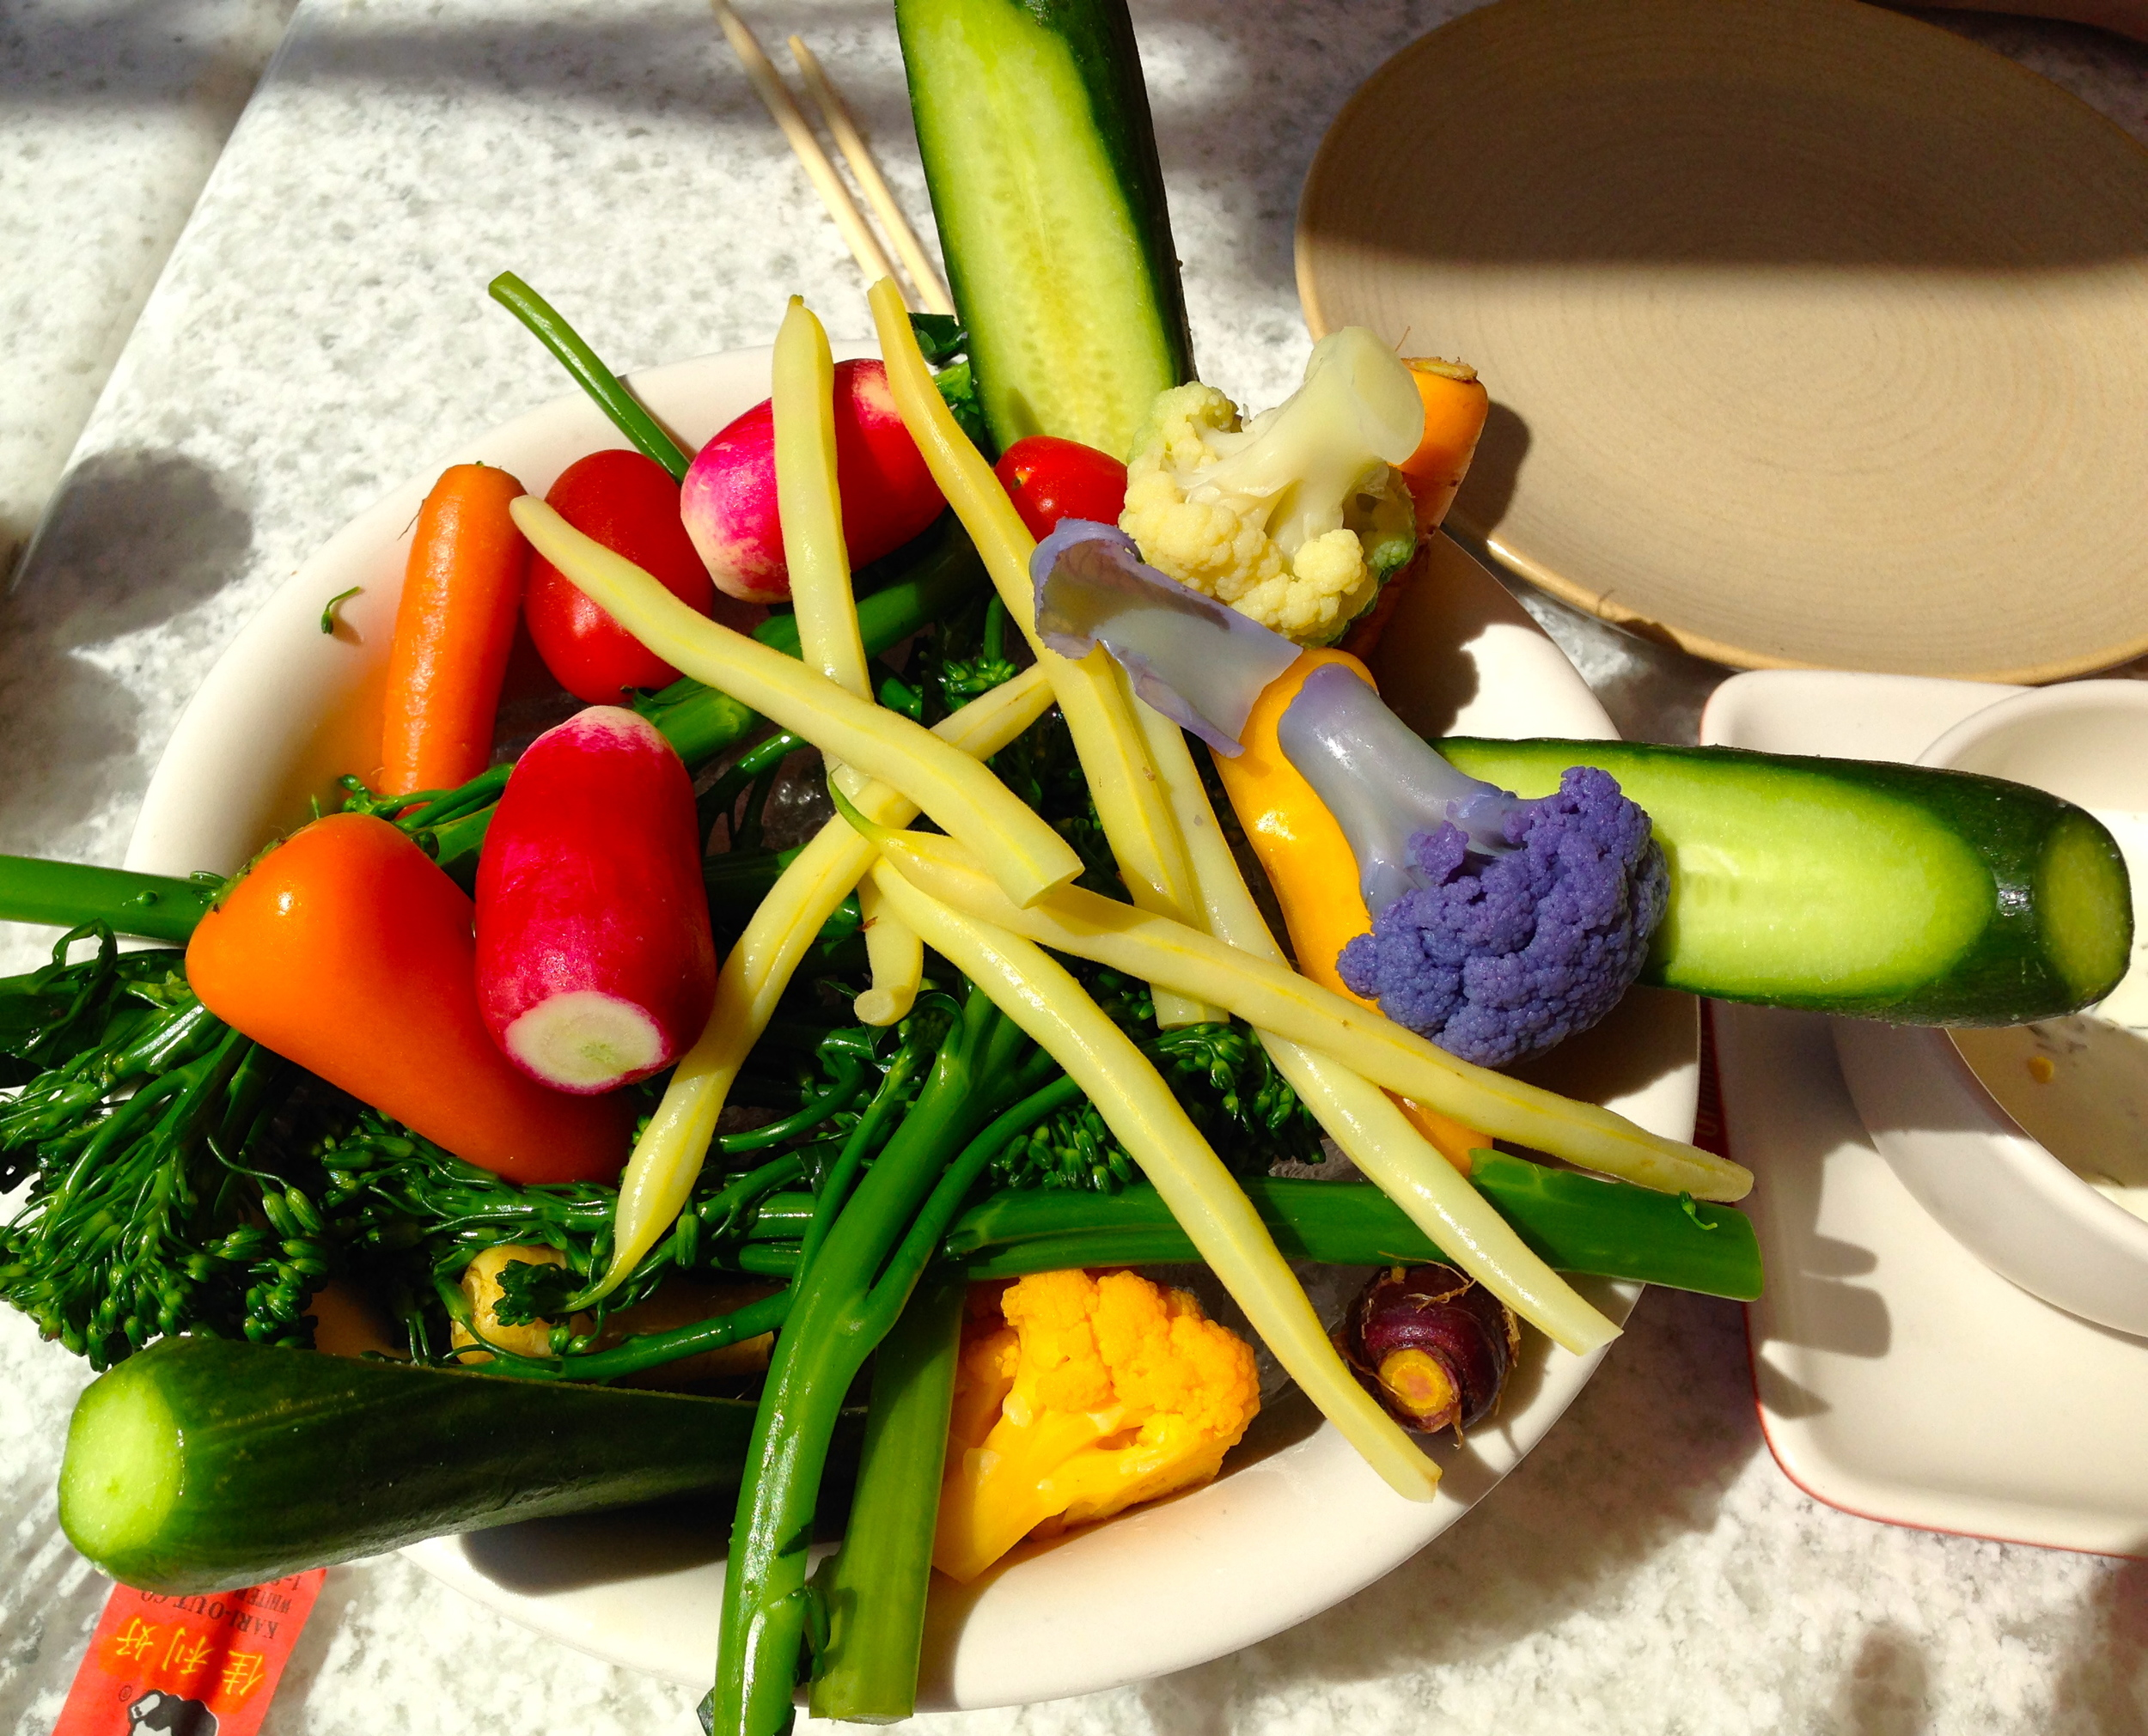 Crudite from True Food Kitchen, Santa Monica.